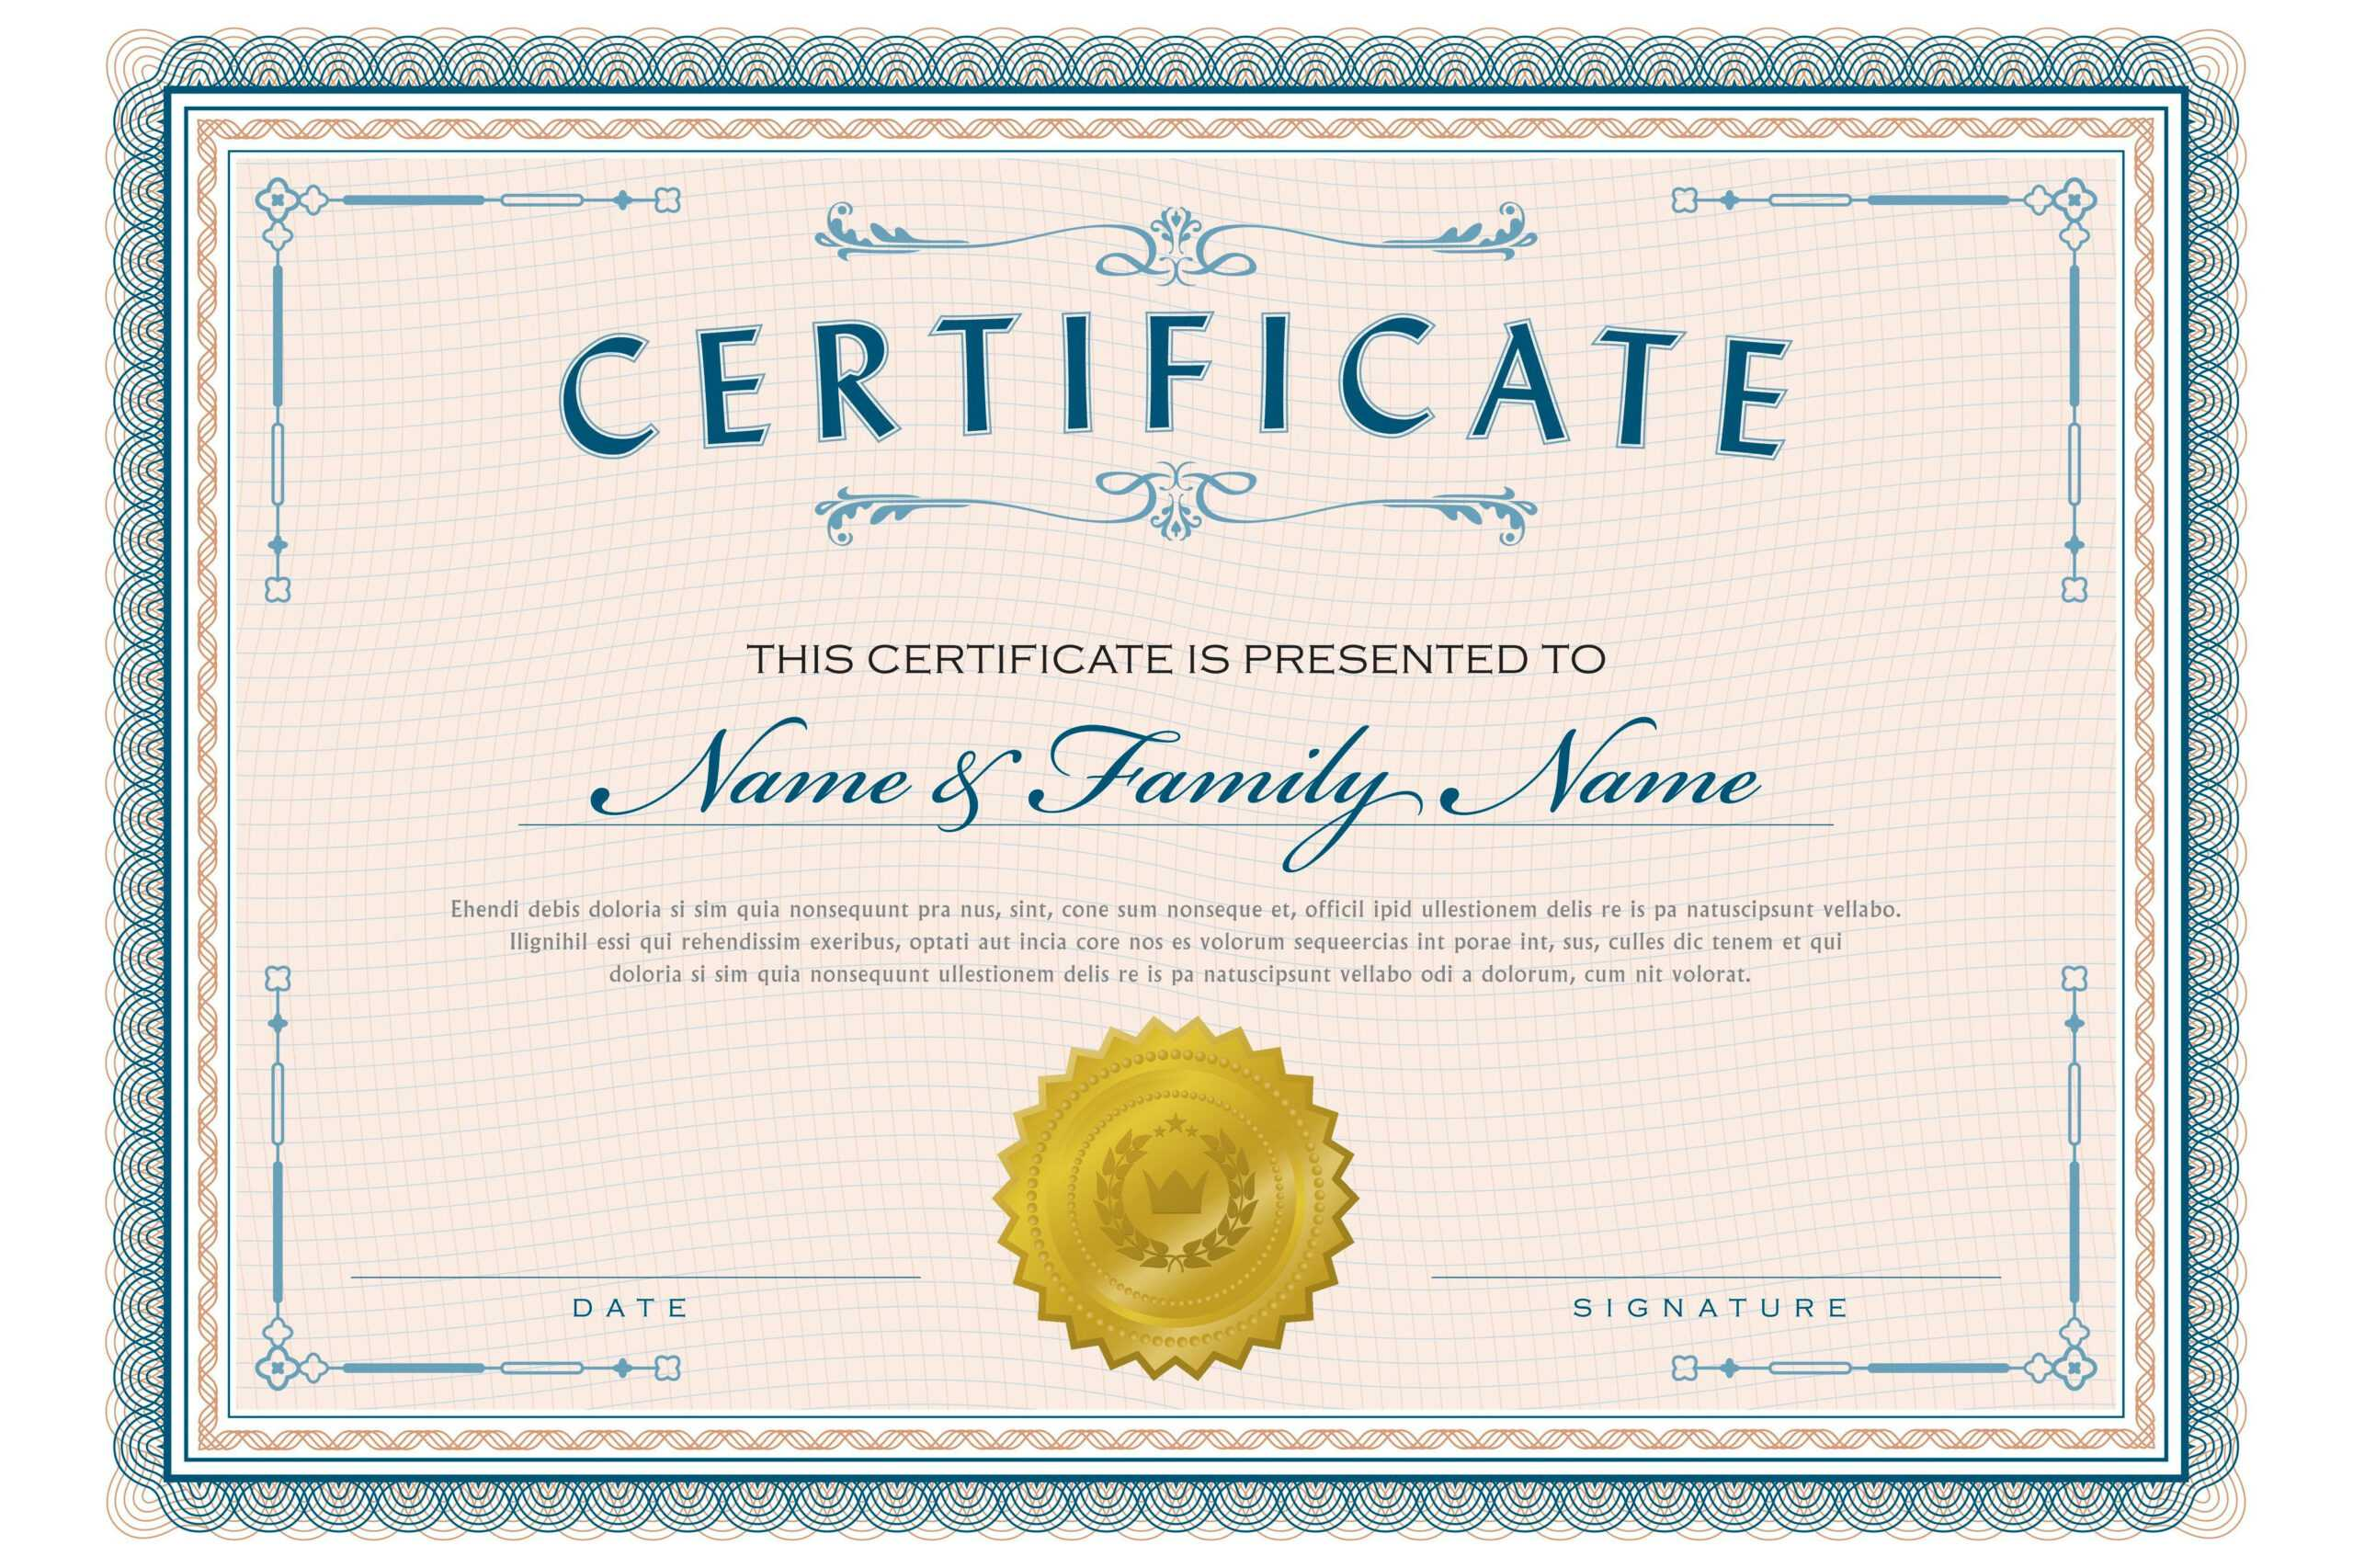 Necessary Parts Of An Award Certificate Throughout Spelling Bee Award Certificate Template